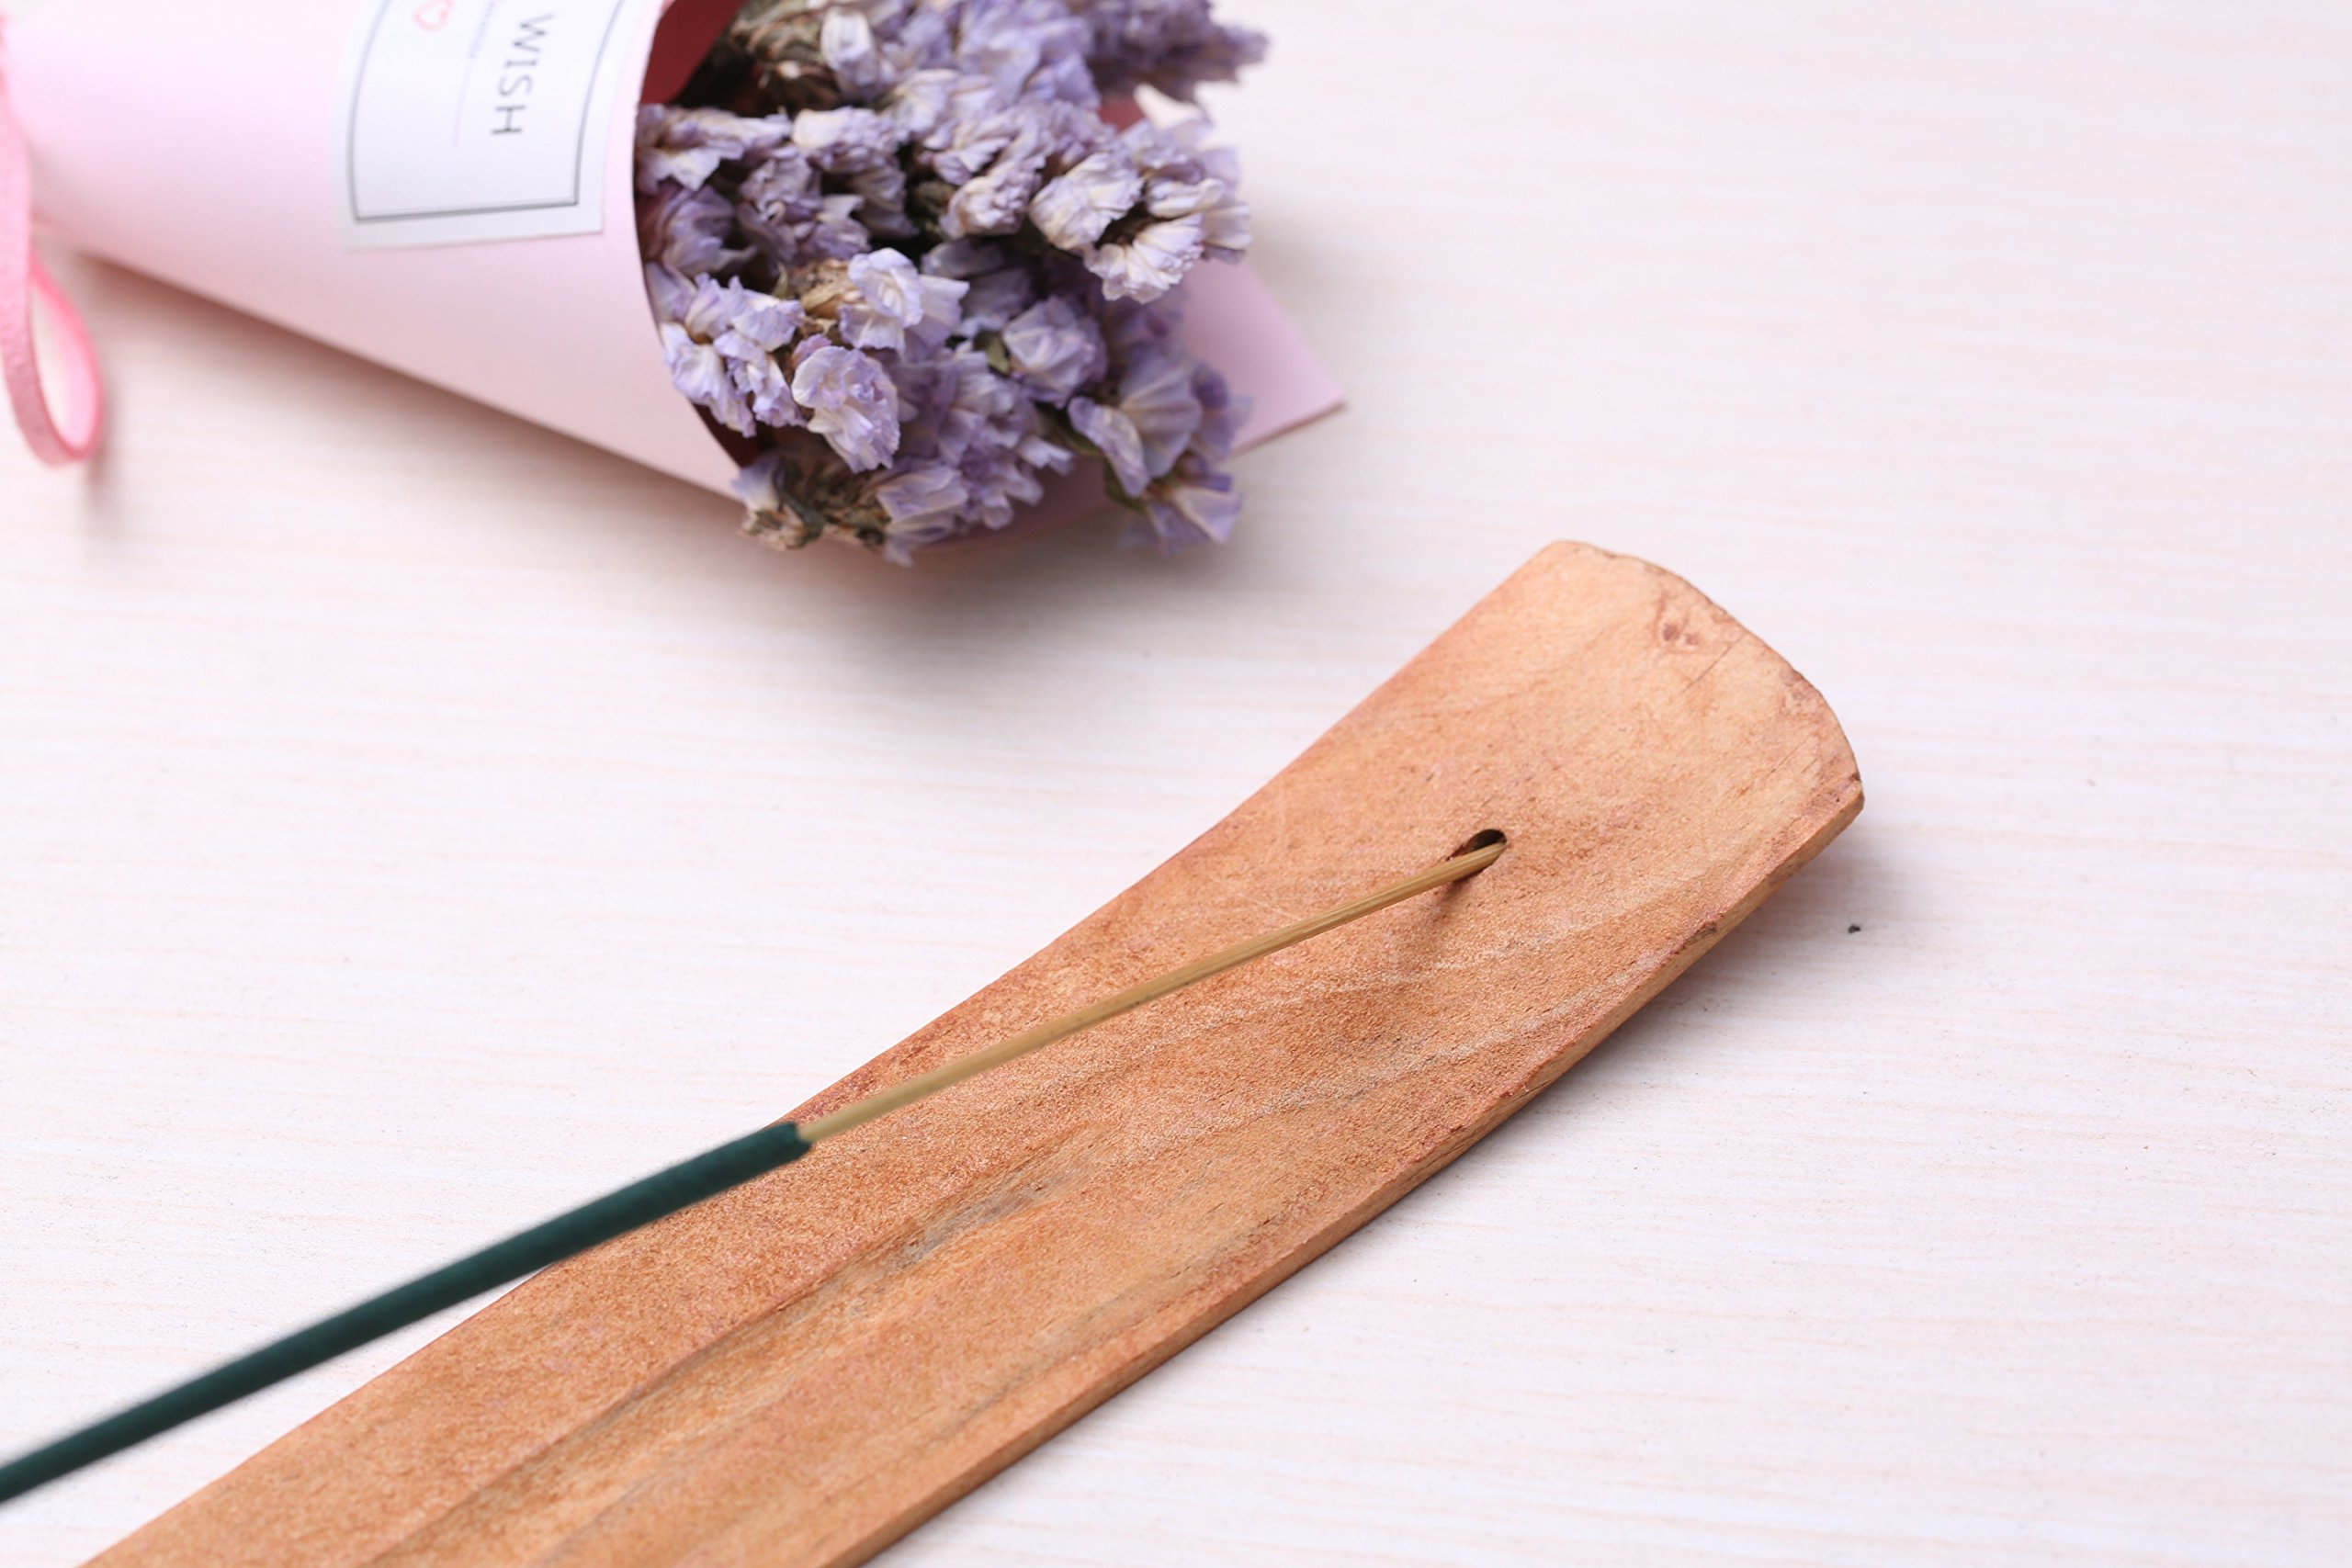 NatureMax Sticks, Incense Stick, 100% Natural, Bamboo Infused with Citronella, Lemongrass (40 Sticks with Incense Holder) by NatureMax (Image #4)